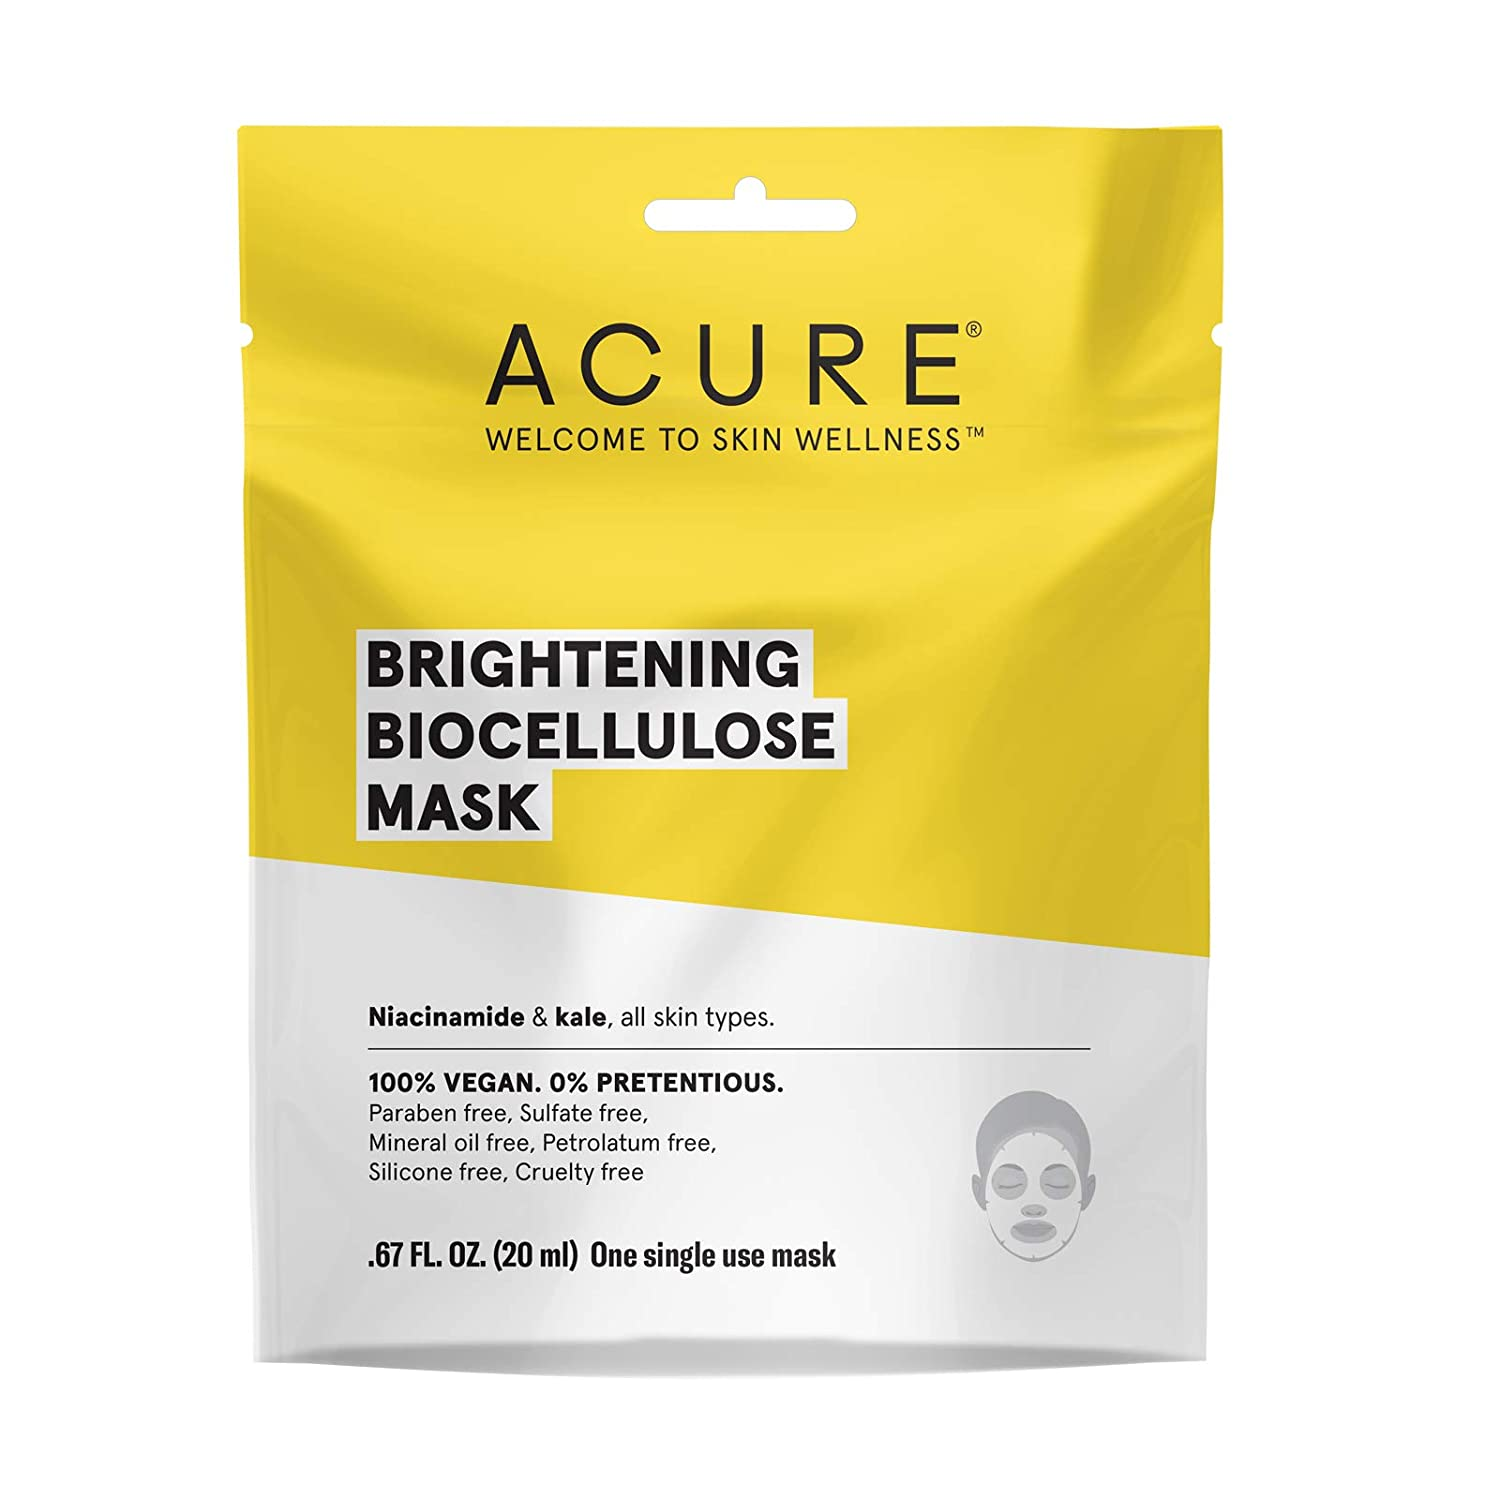 ACURE Brightening Biocellulose Gel Mask   100% Vegan   For A Brighter Appearance   Niacinamide & Kale - Vitamin B3   One Single Use   All Skin Types   5 Pack